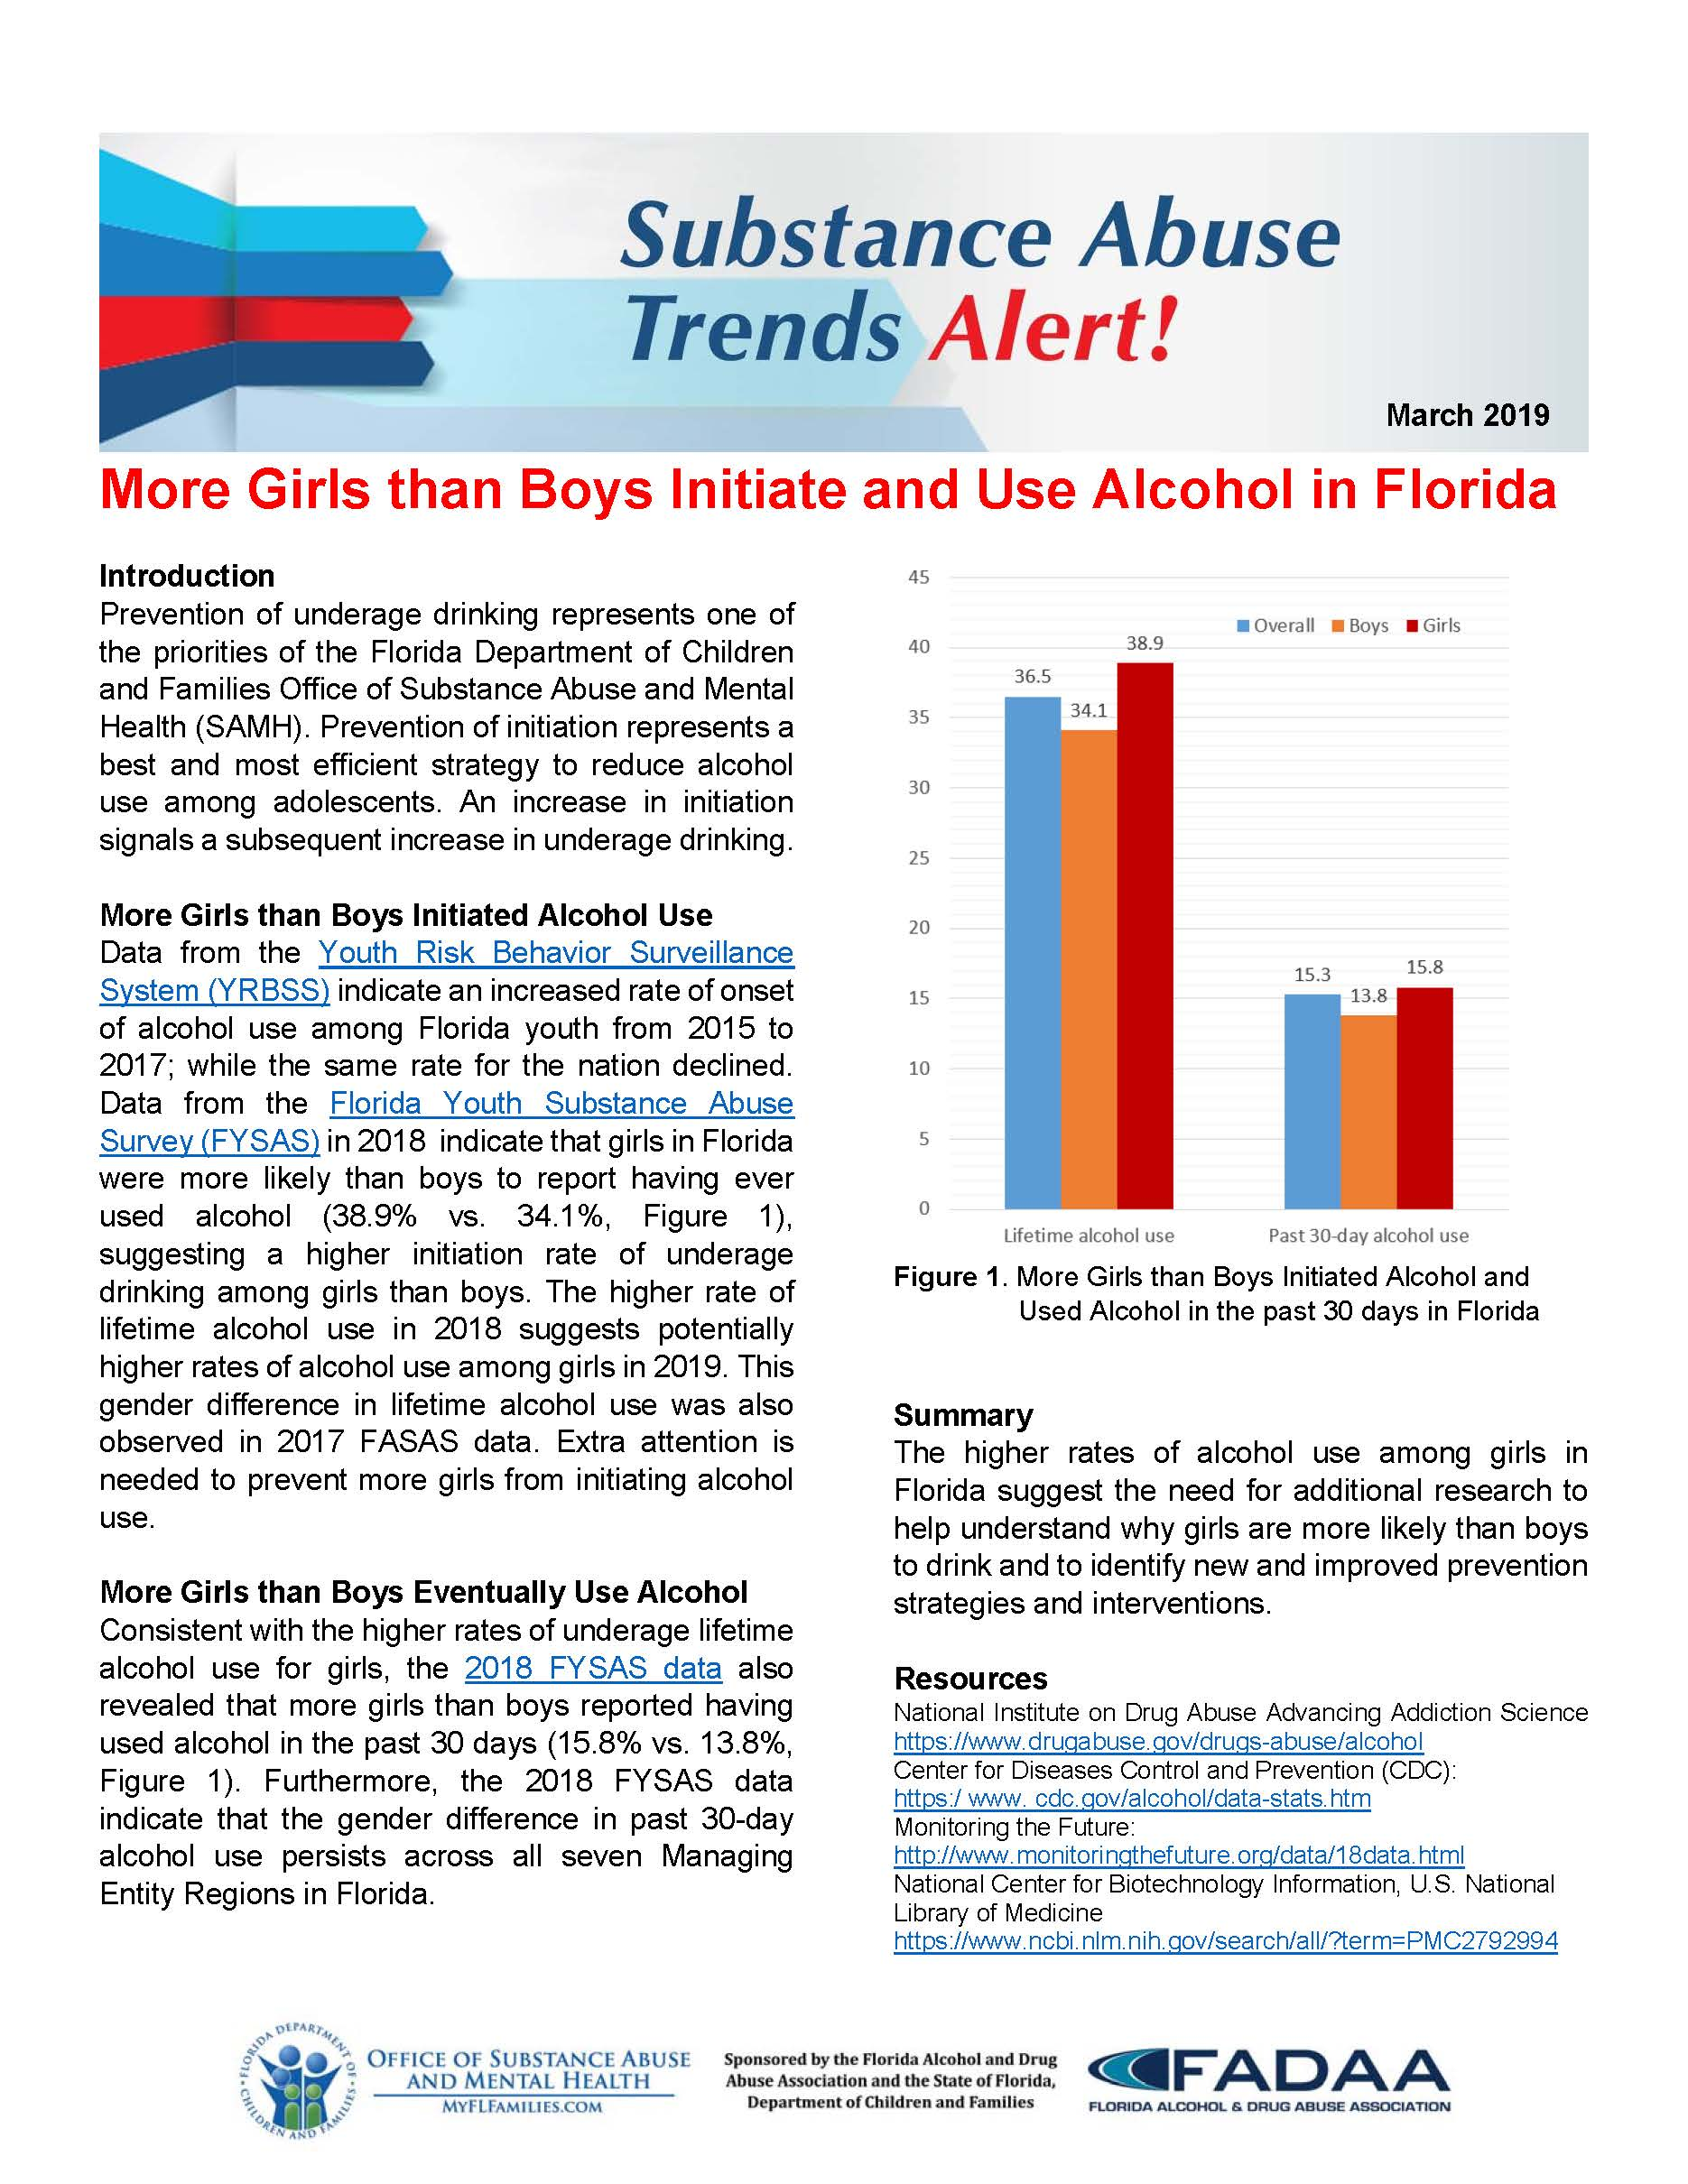 FADAA's Substance Abuse Trends Alert - More Girls than Boys Initiate and Use Alcohol in Florida - March 2019 Cover